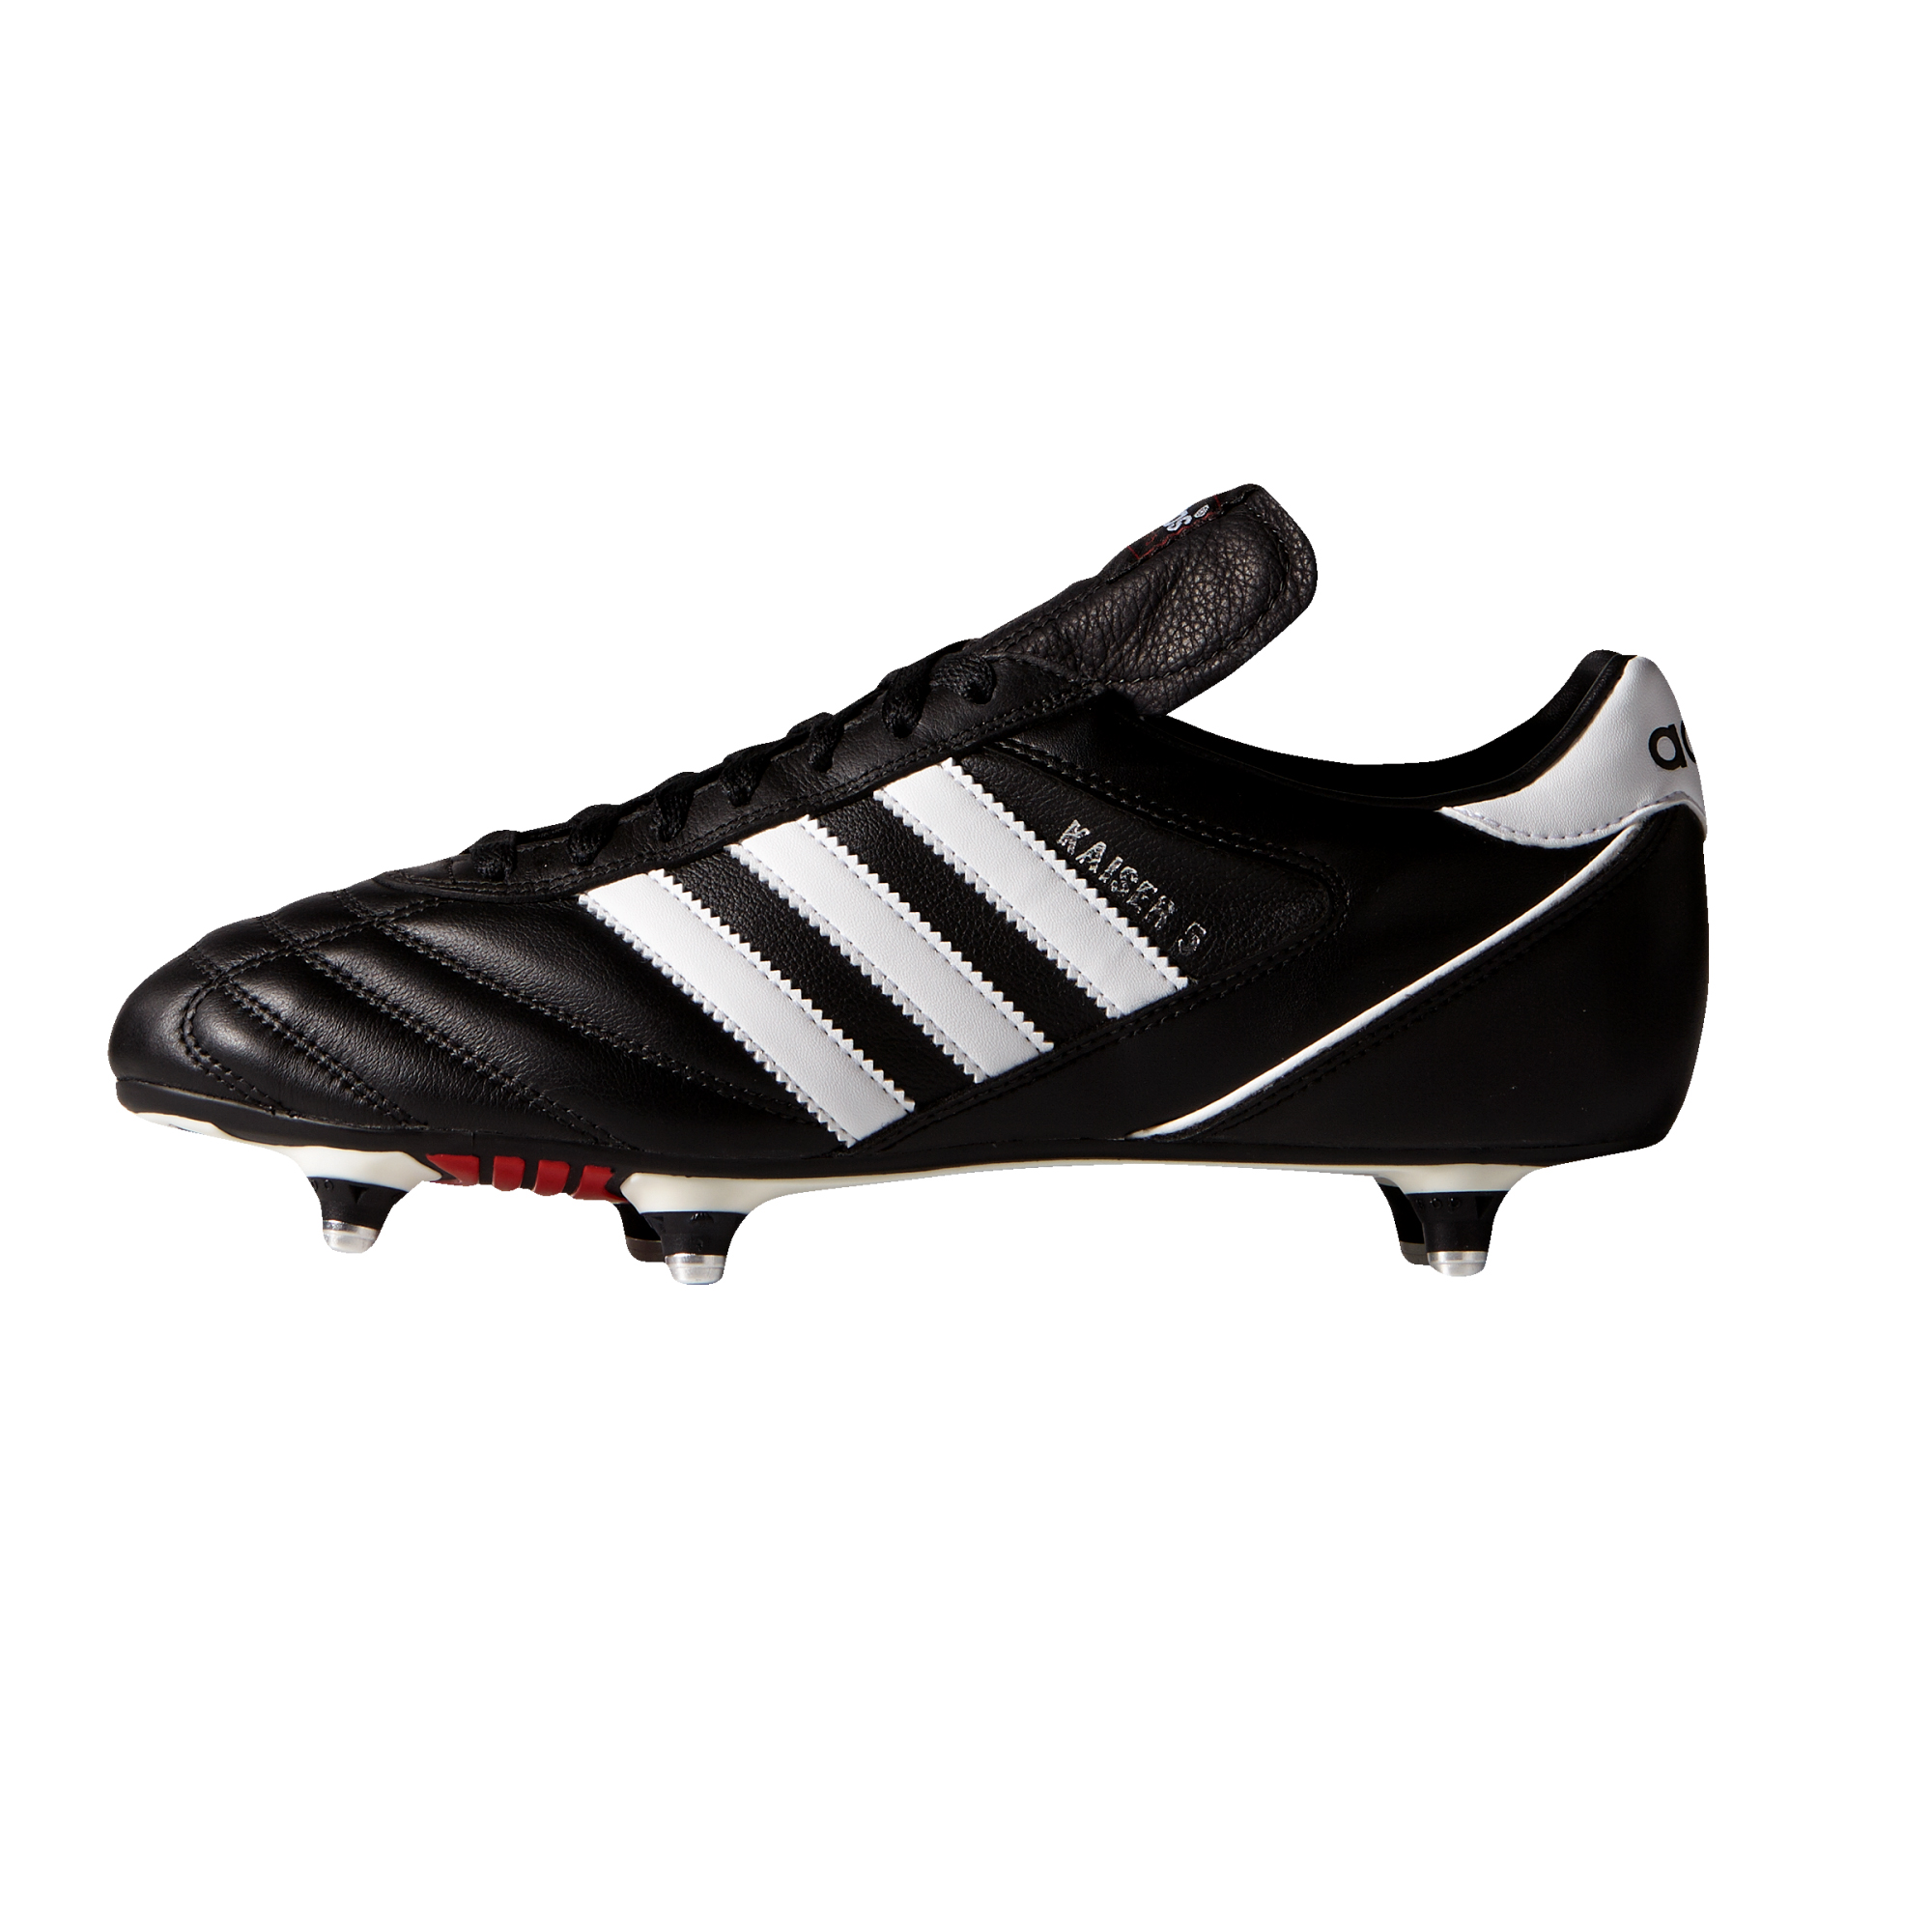 miniature 8 - Adidas-Kaiser-5-Cup-SG-Soft-Ground-pour-homme-Football-Boot-Noir-Blanc